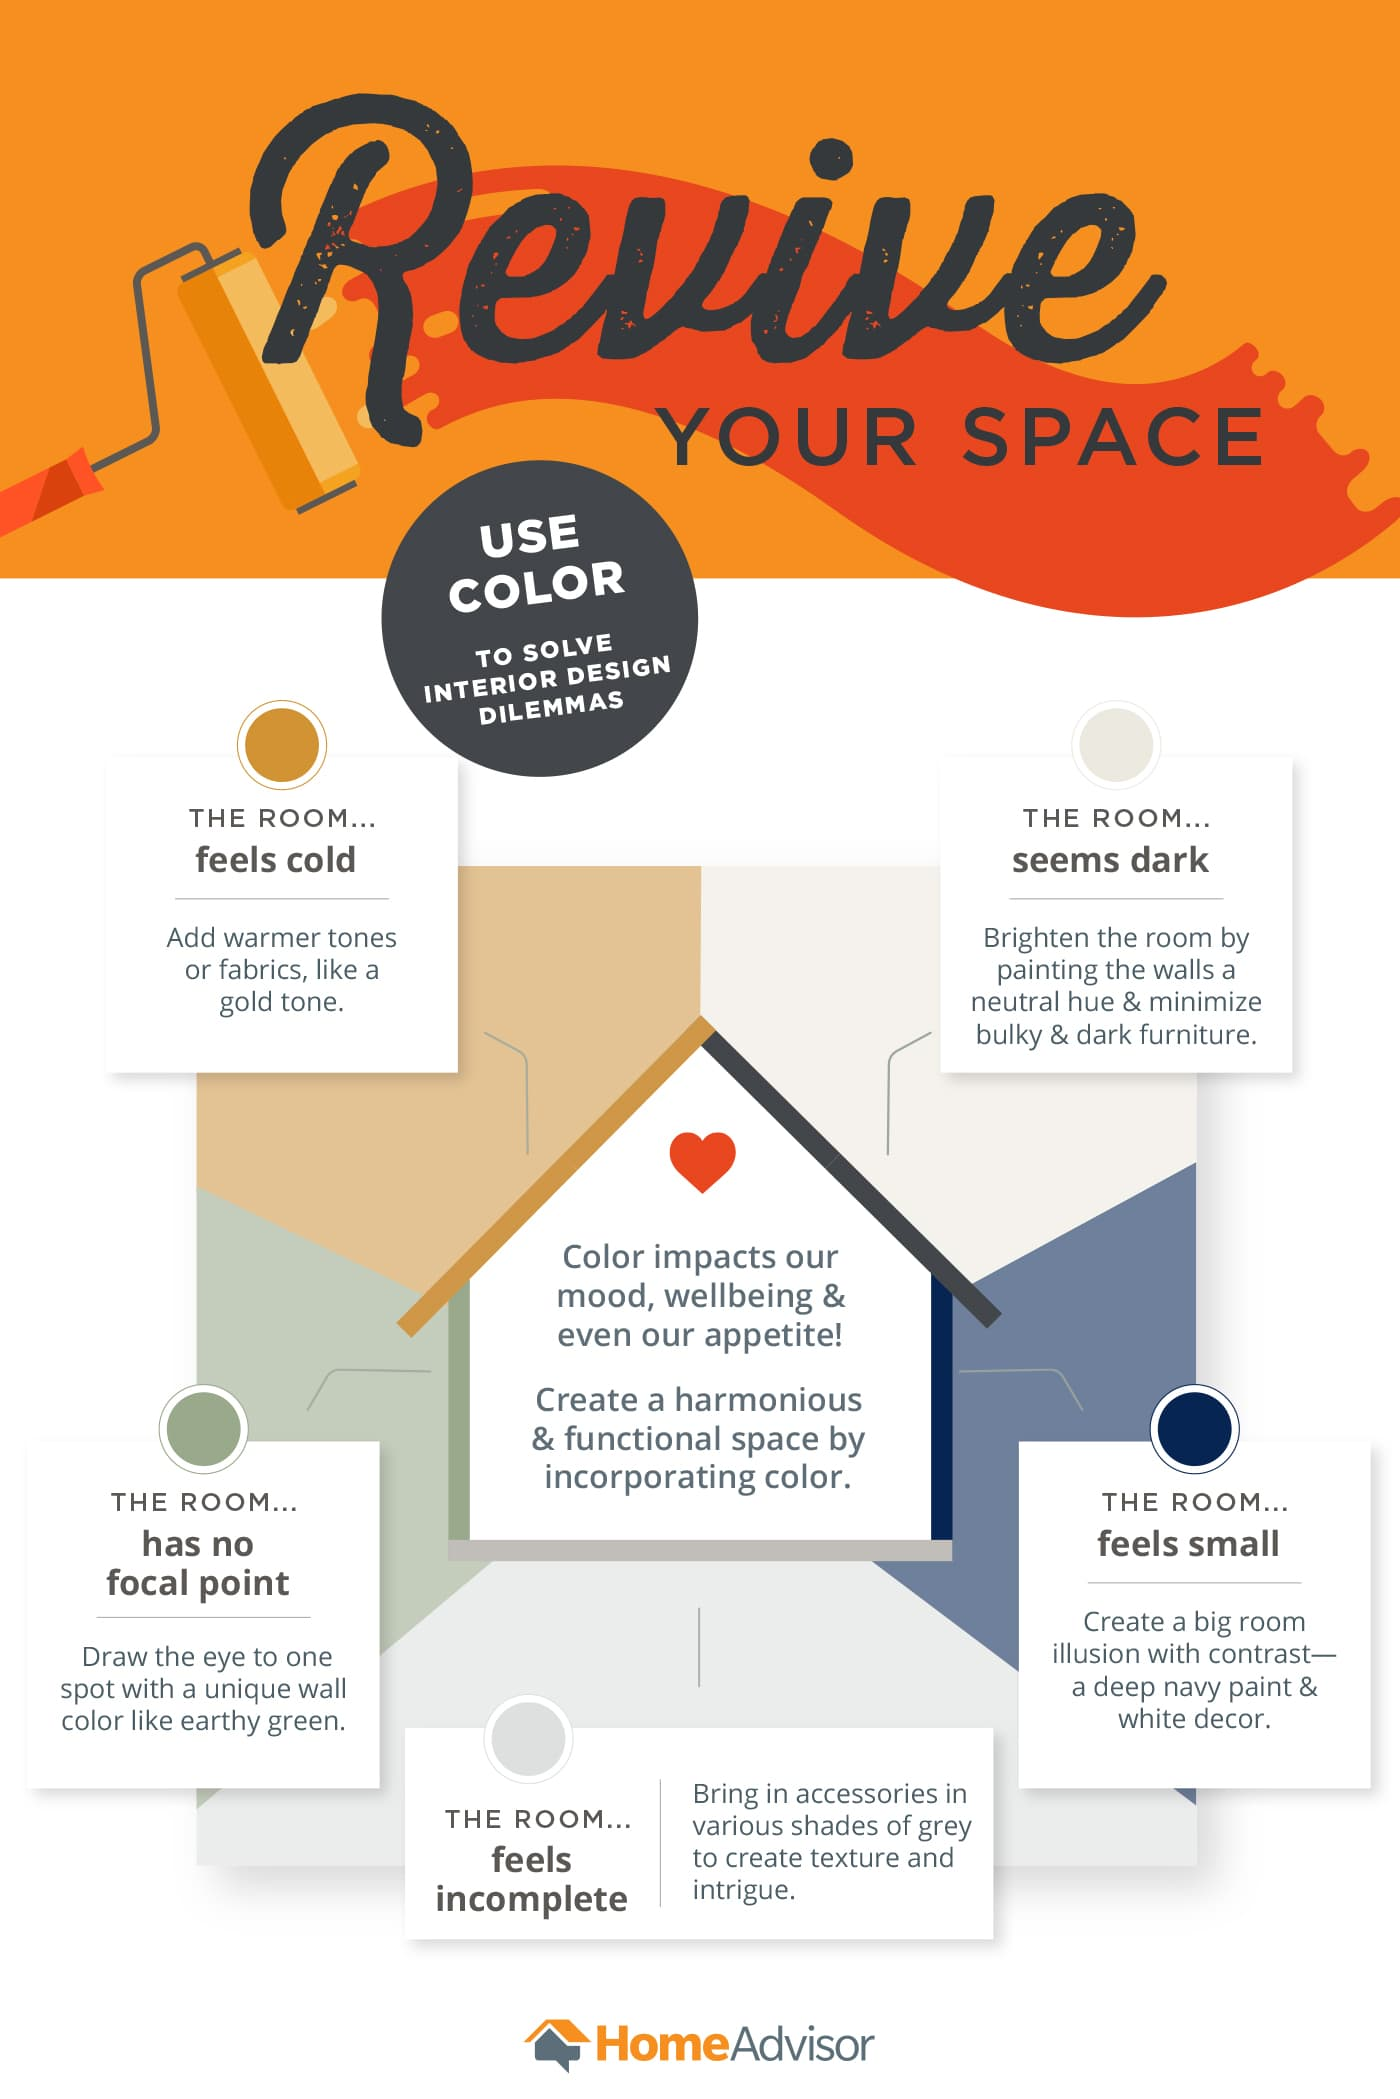 Things to Consider Before a Kitchen Remodel. Infographic on how to approach the interior decoration and reviving